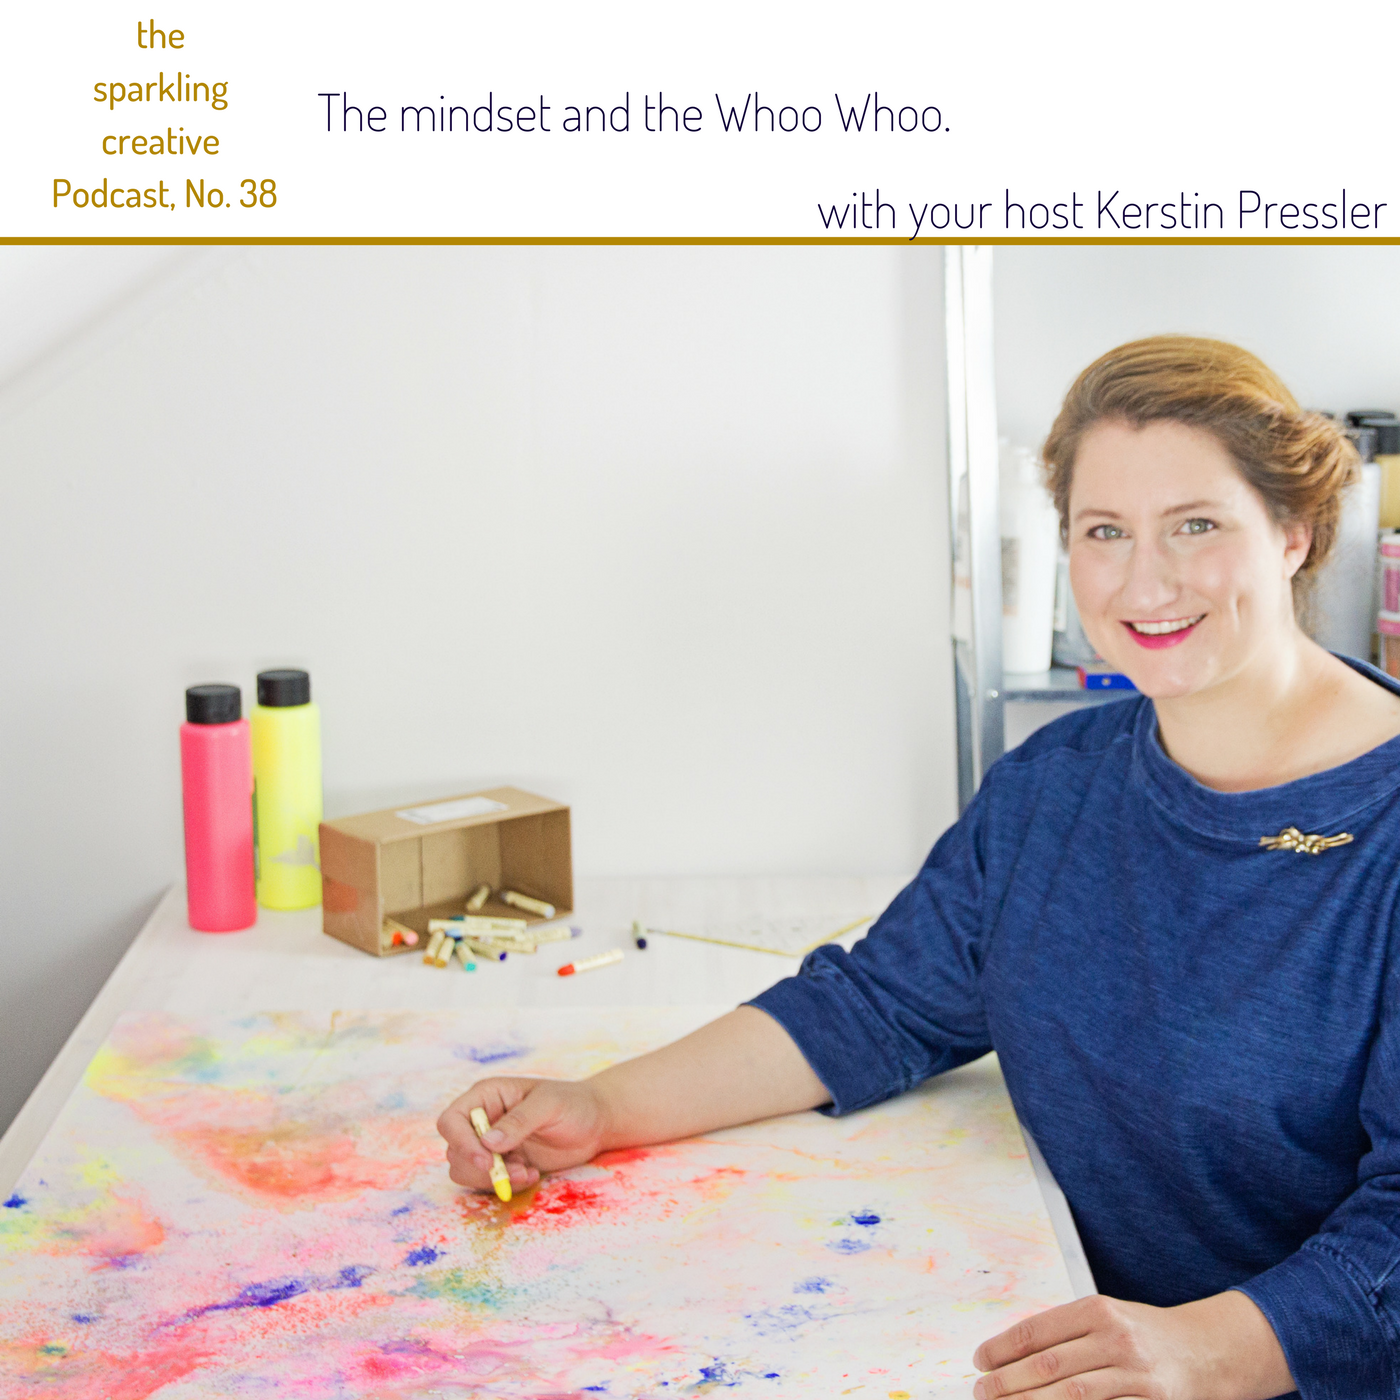 The sparkling creative Podcast No. 38. The mindset and the Whoo Whoo.